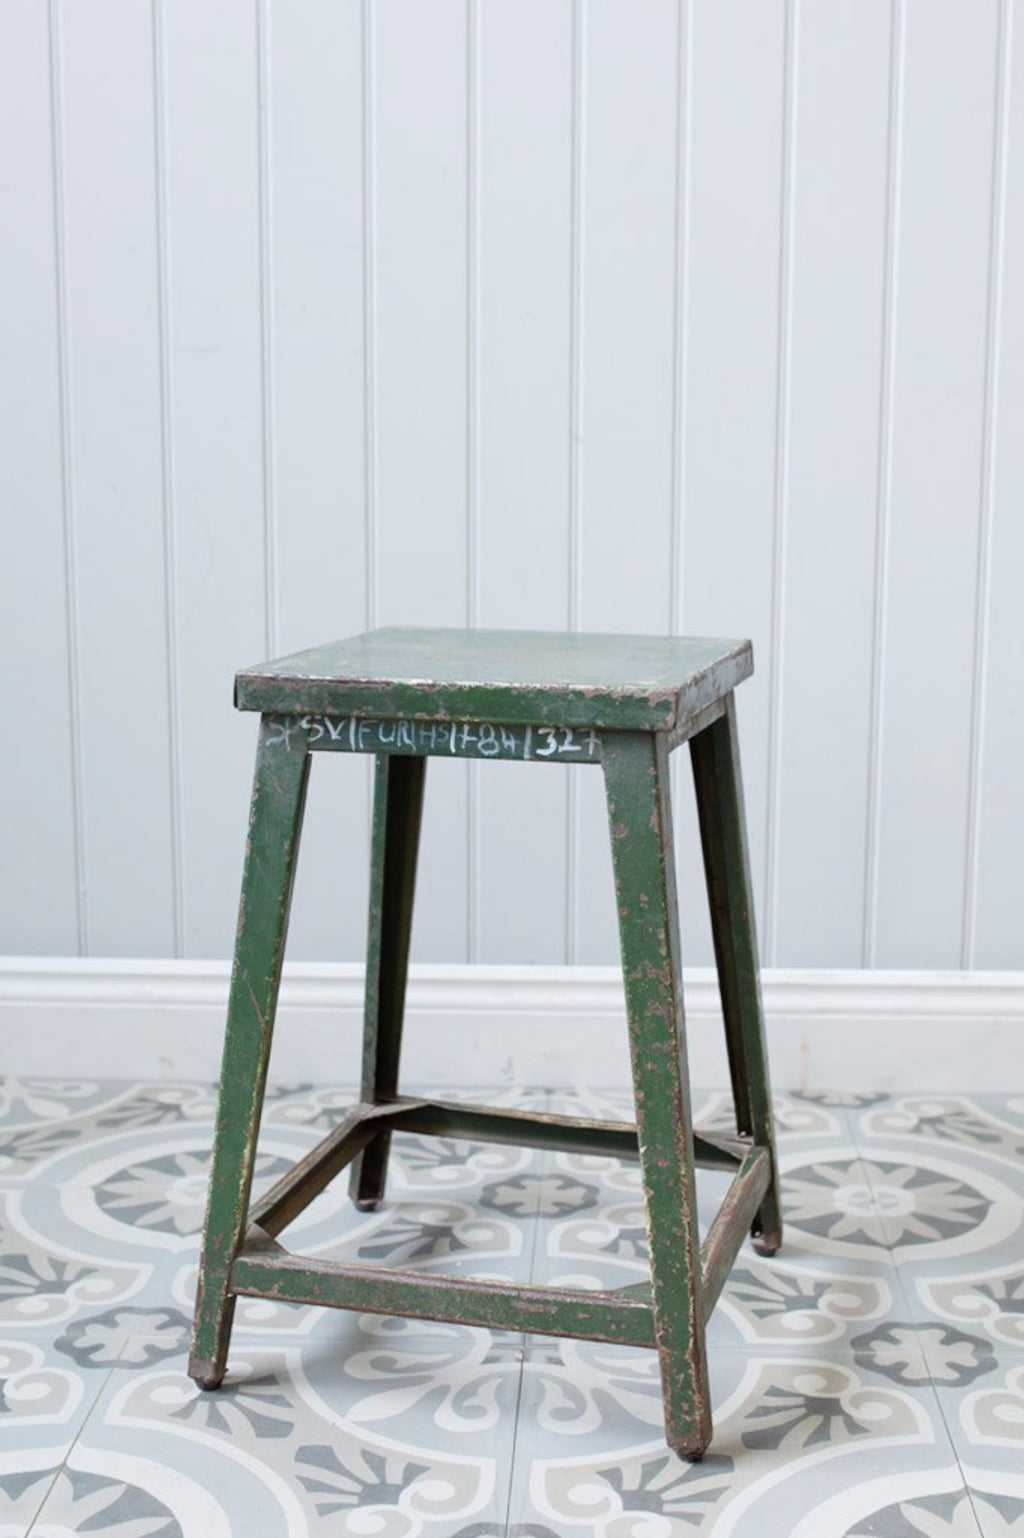 Indian Railway Stool